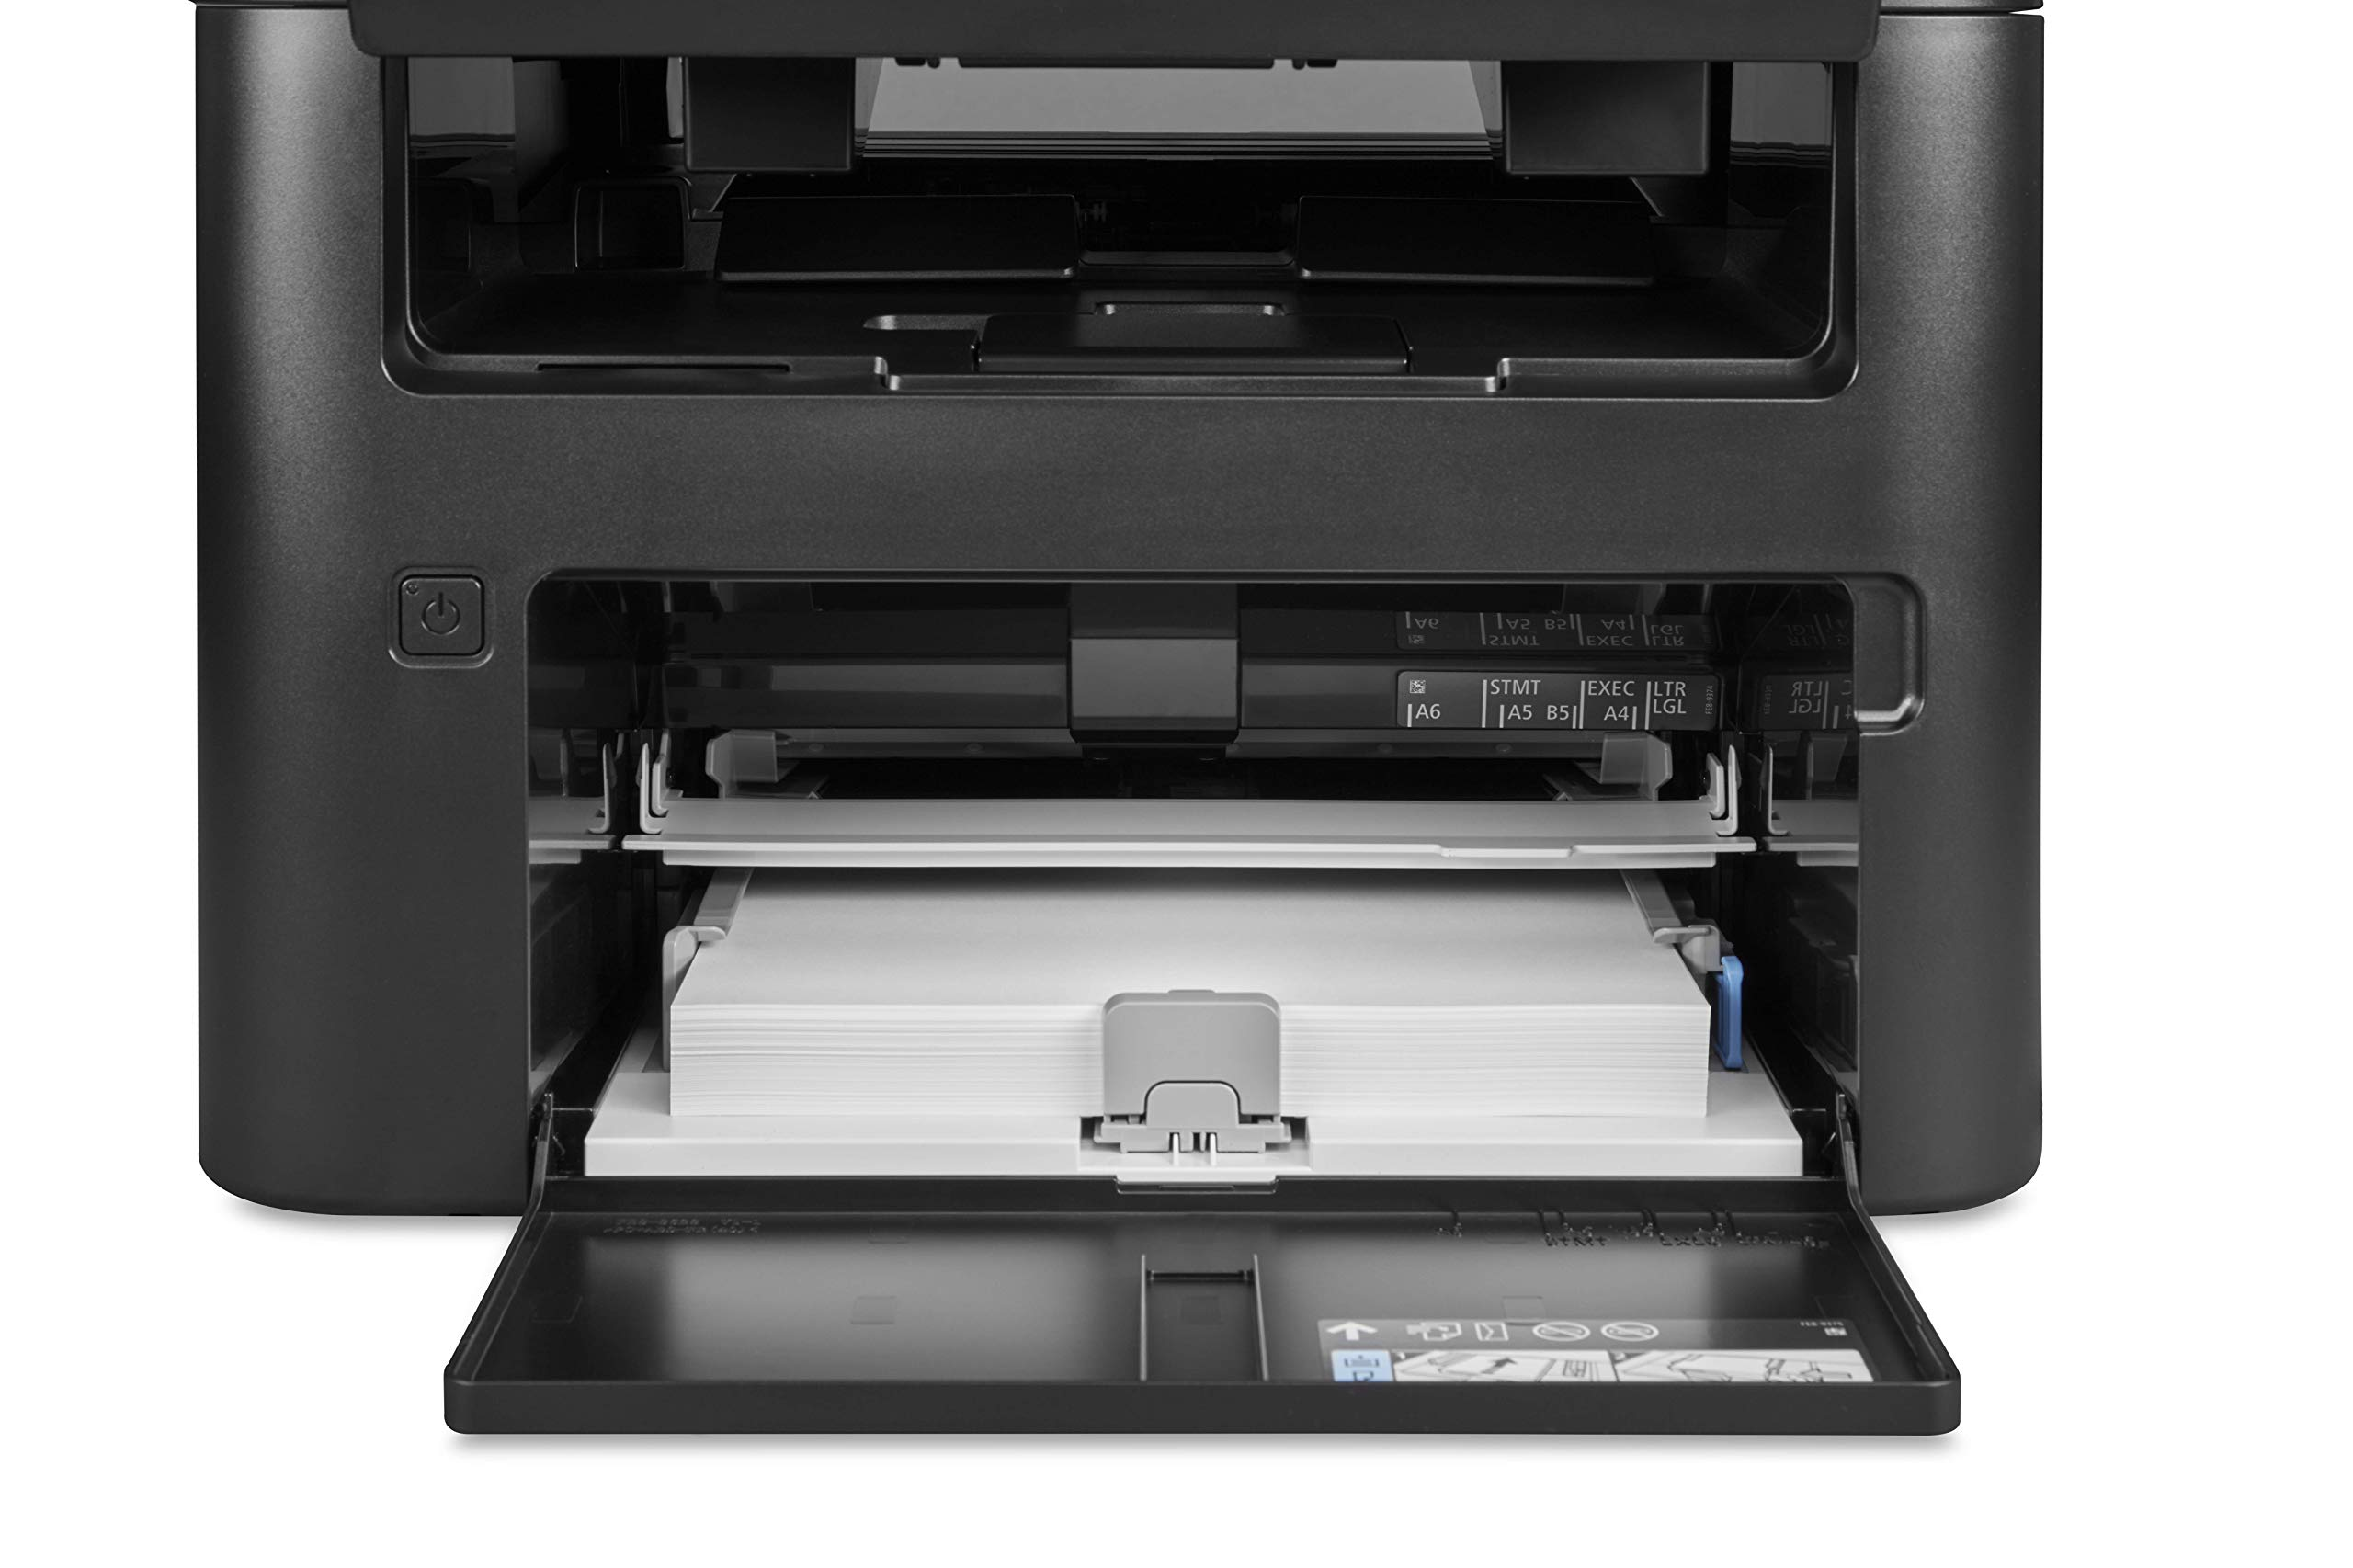 Canon imageCLASS MF269dw VP - All in One, Wireless, Mobile Ready, Duplex Laser Printer (Comes with 2 Year Limited Warranty) by Canon (Image #4)